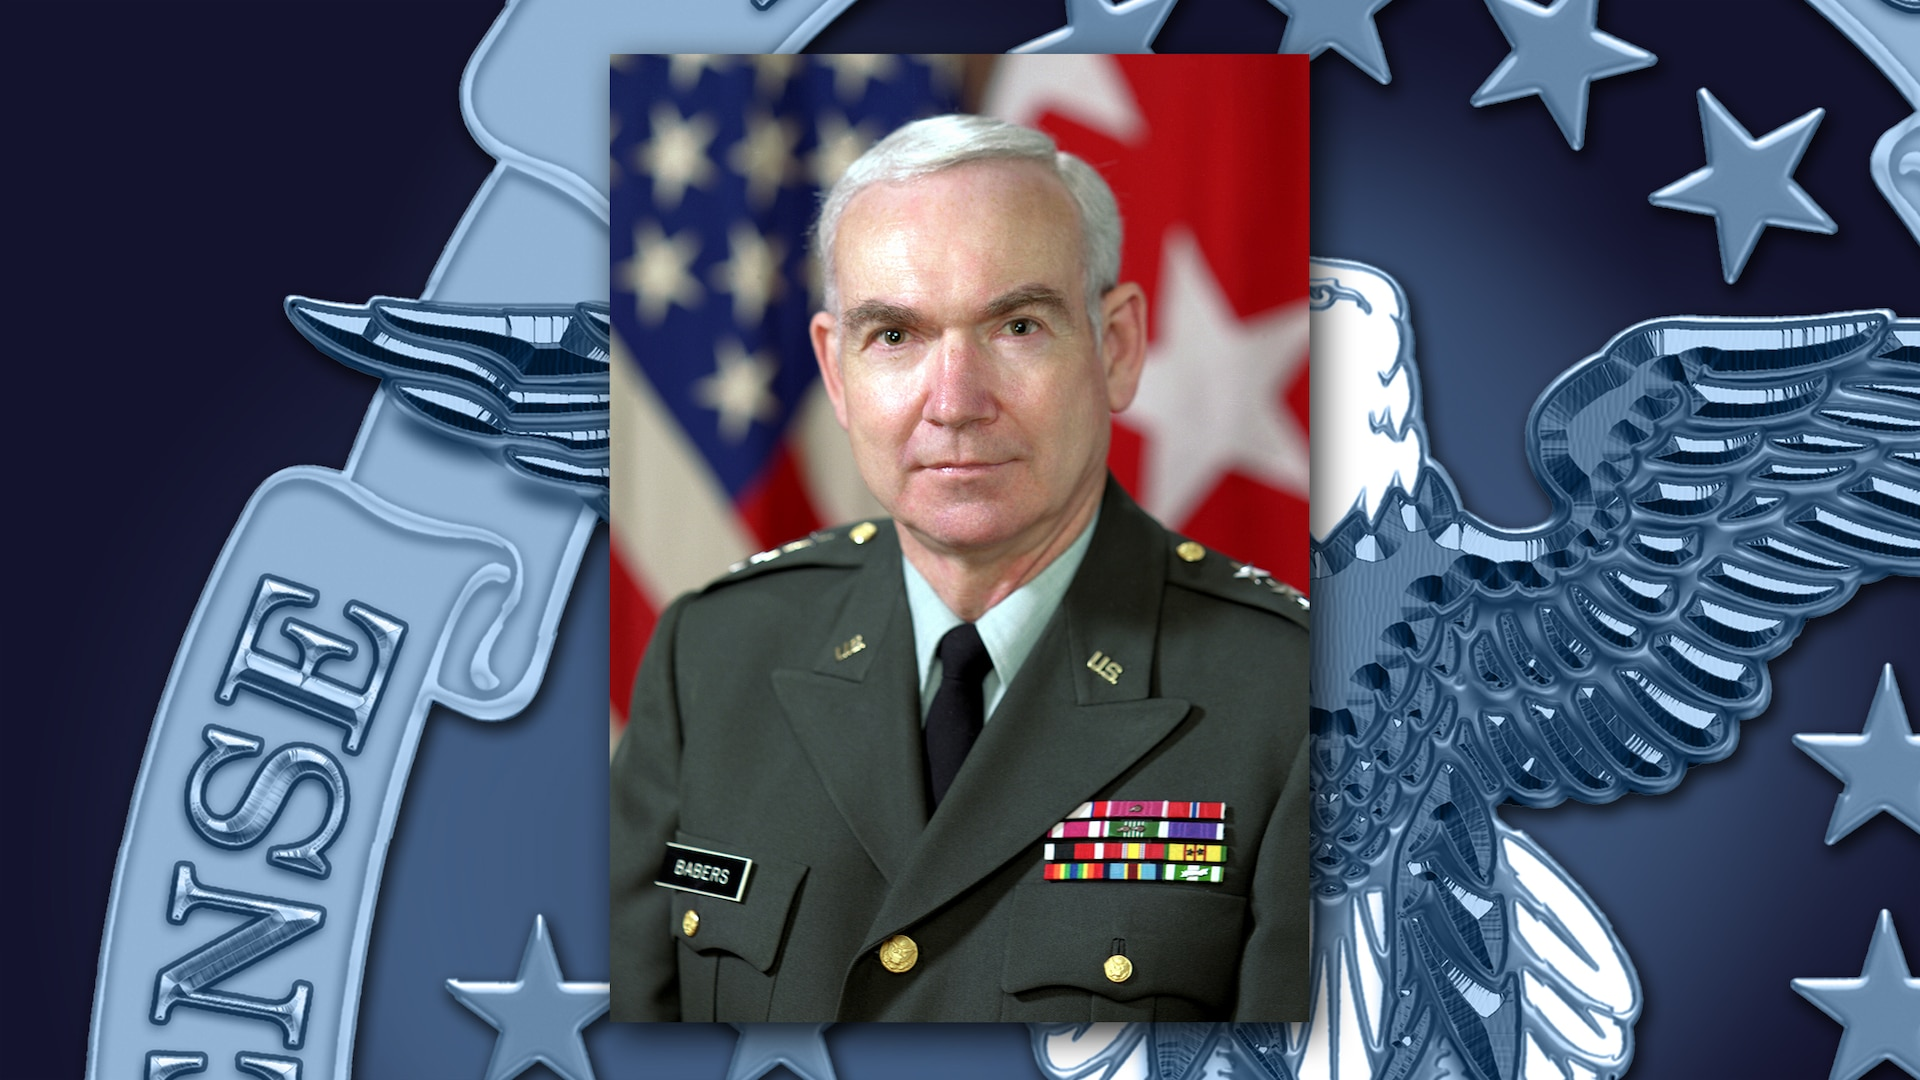 White man in Army green dress uniform with ribbons stands in sits in front of the US flags.